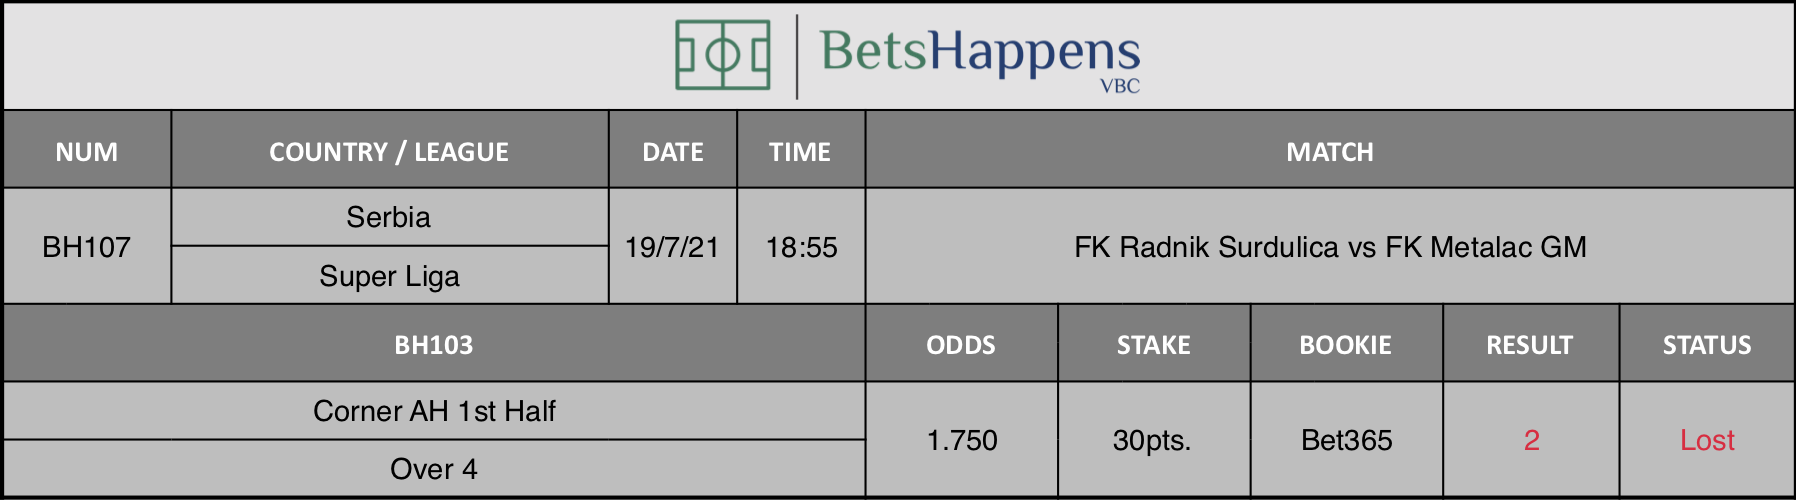 Results of our advice for the FK Radnik Surdulica vs FK Metalac GM match in which Corner AH 1st Half Over 4 is recommended.